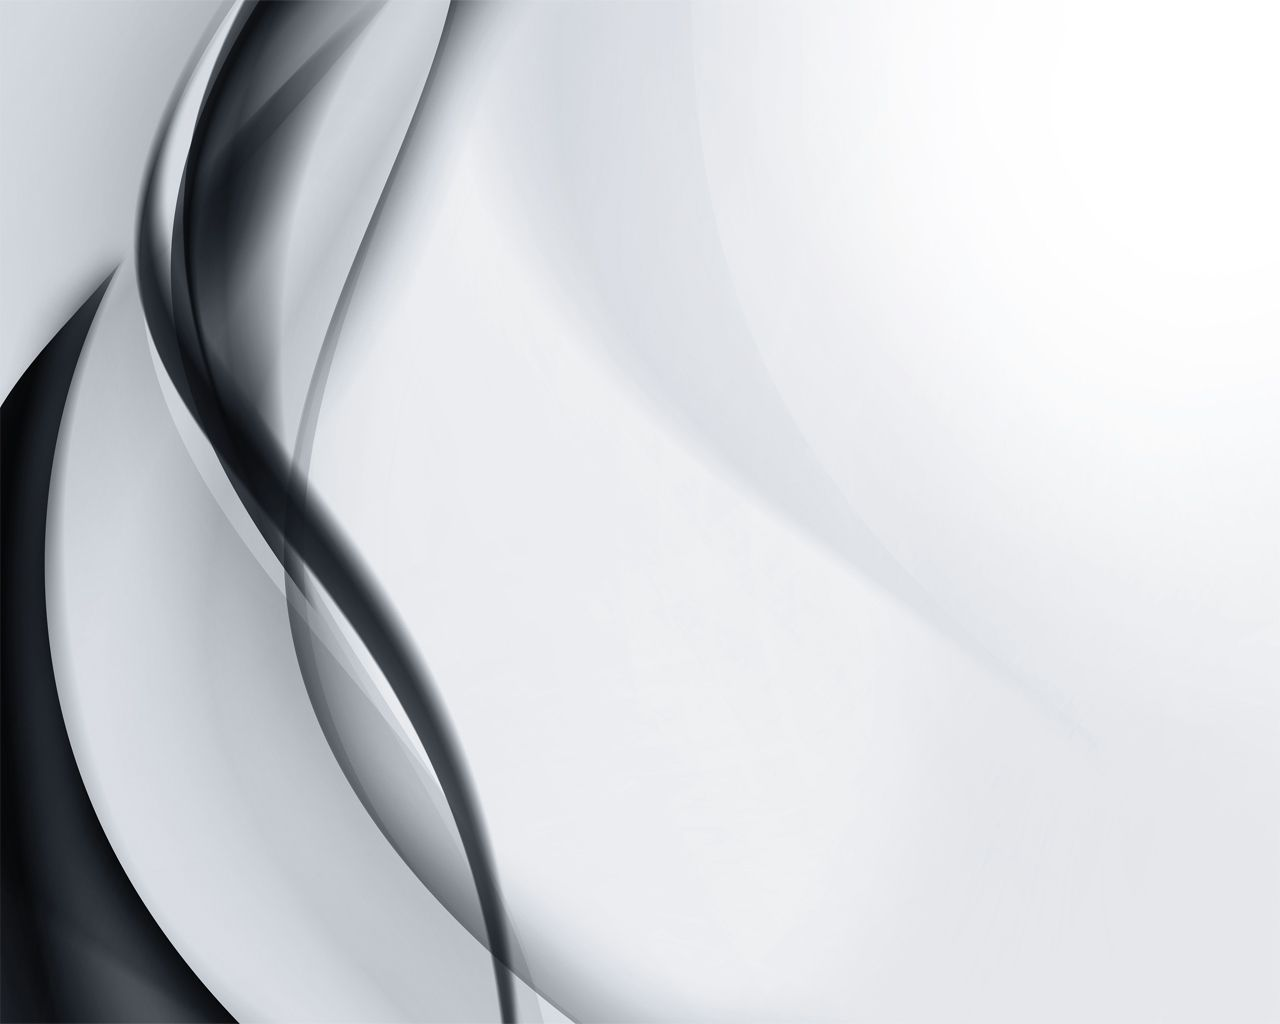 Black And White Curves Backgrounds For Powerpoint Jpg 1280 1024 Black And White Wallpaper Black And White Background Black And White Abstract